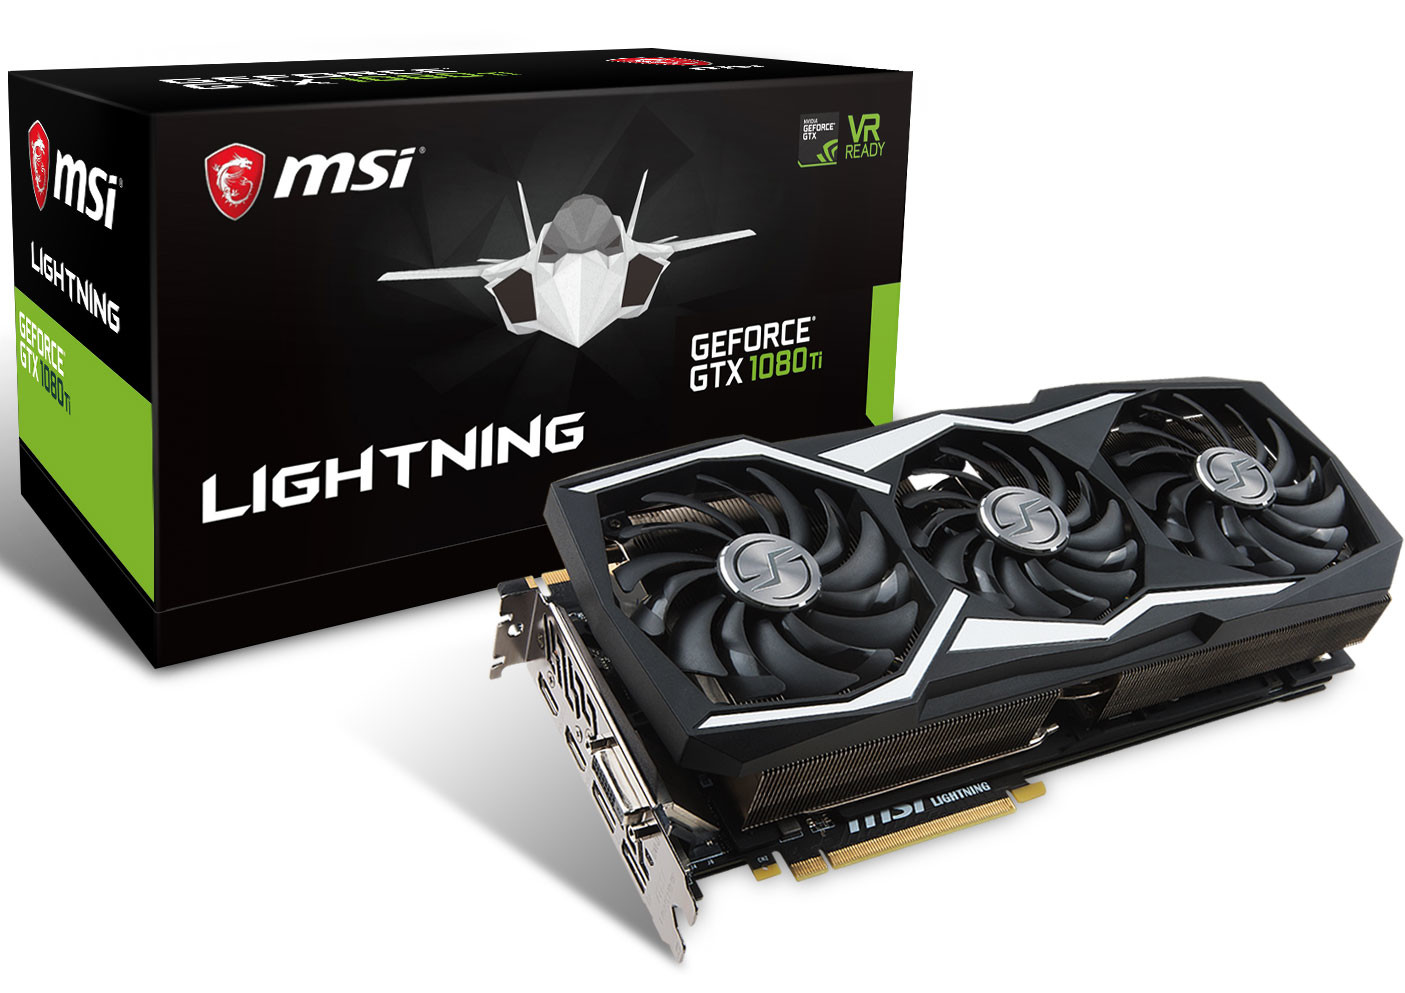 MSI officially announces their GTX 1080 Ti Lightning Z